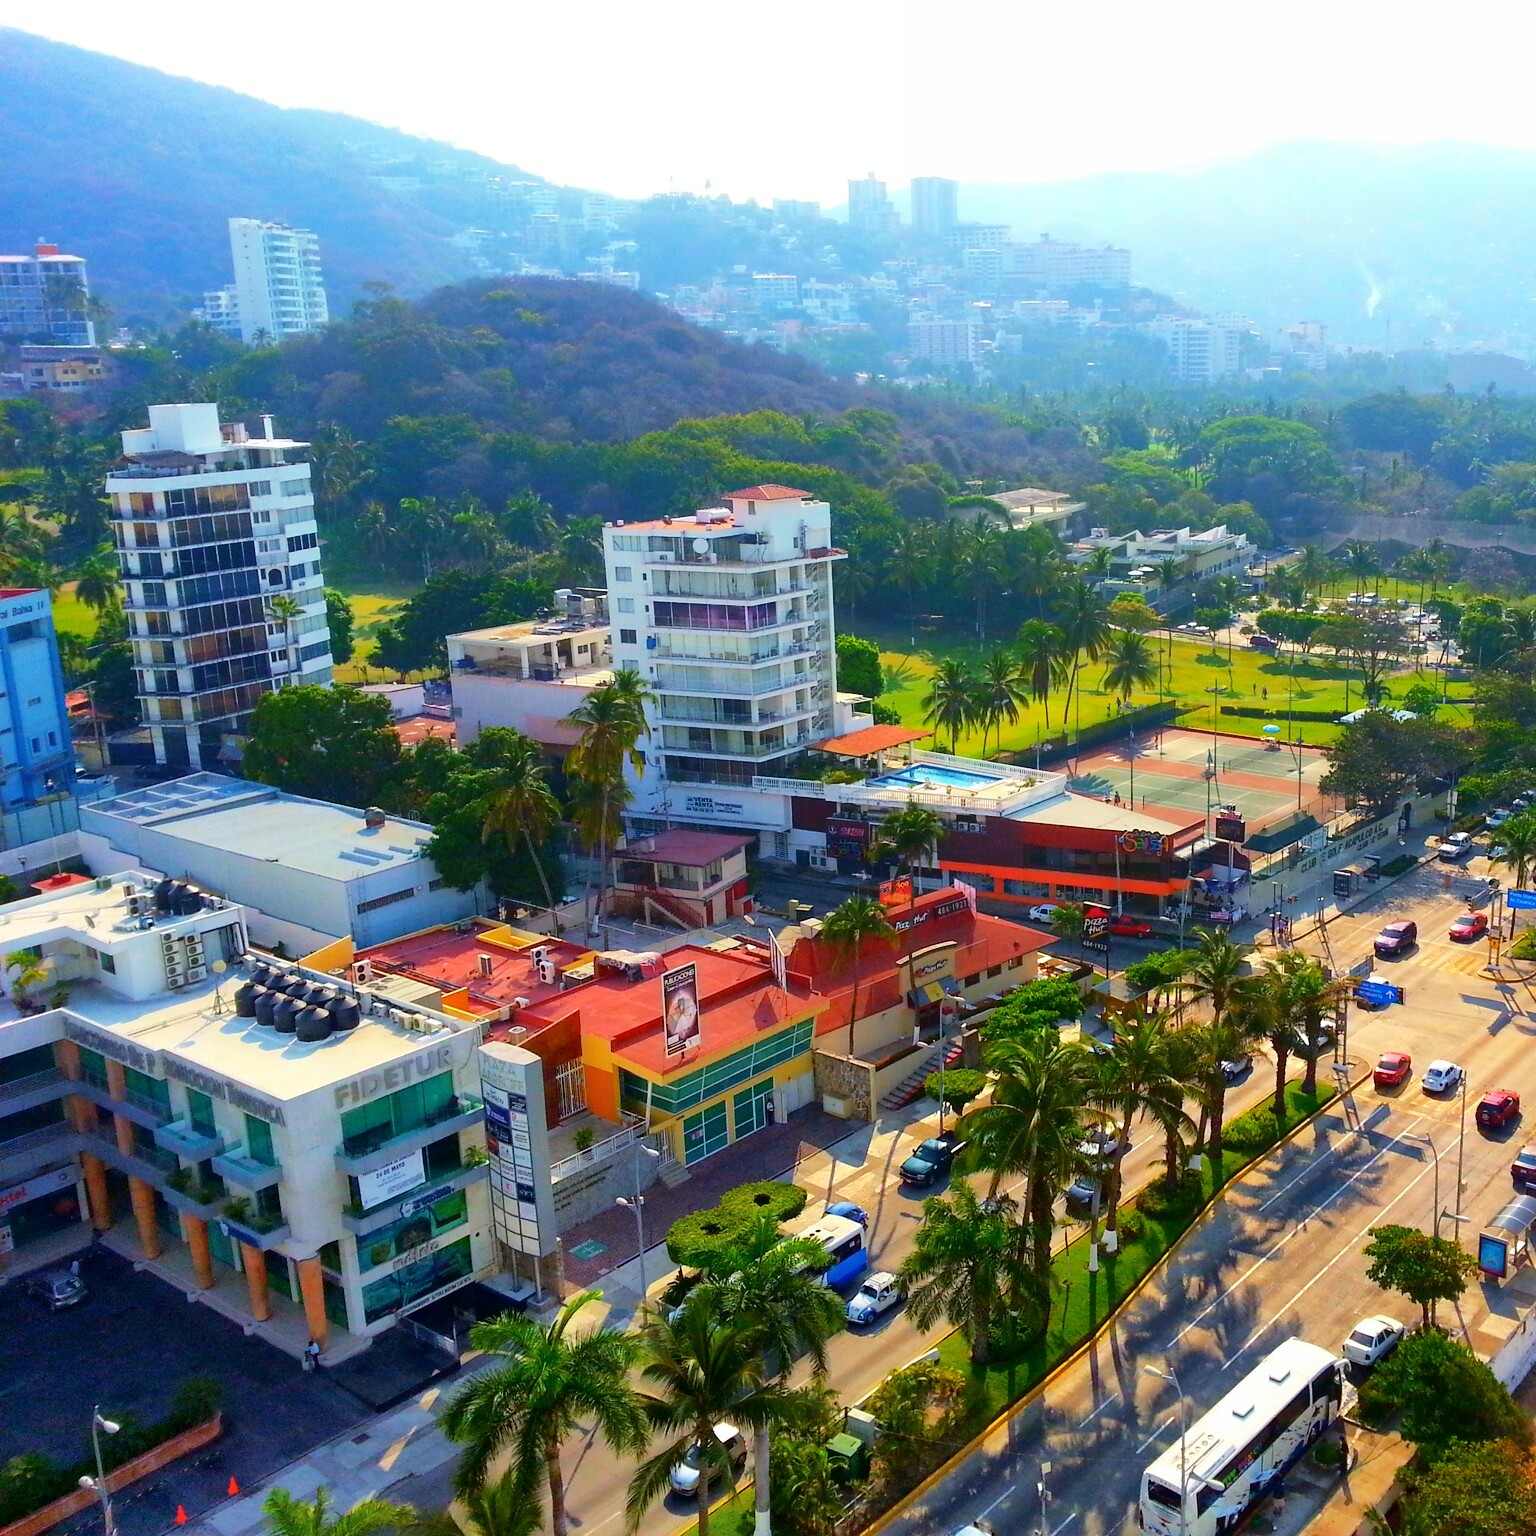 A view of Acapulco, Mexico - Photo by Meiji Valmont